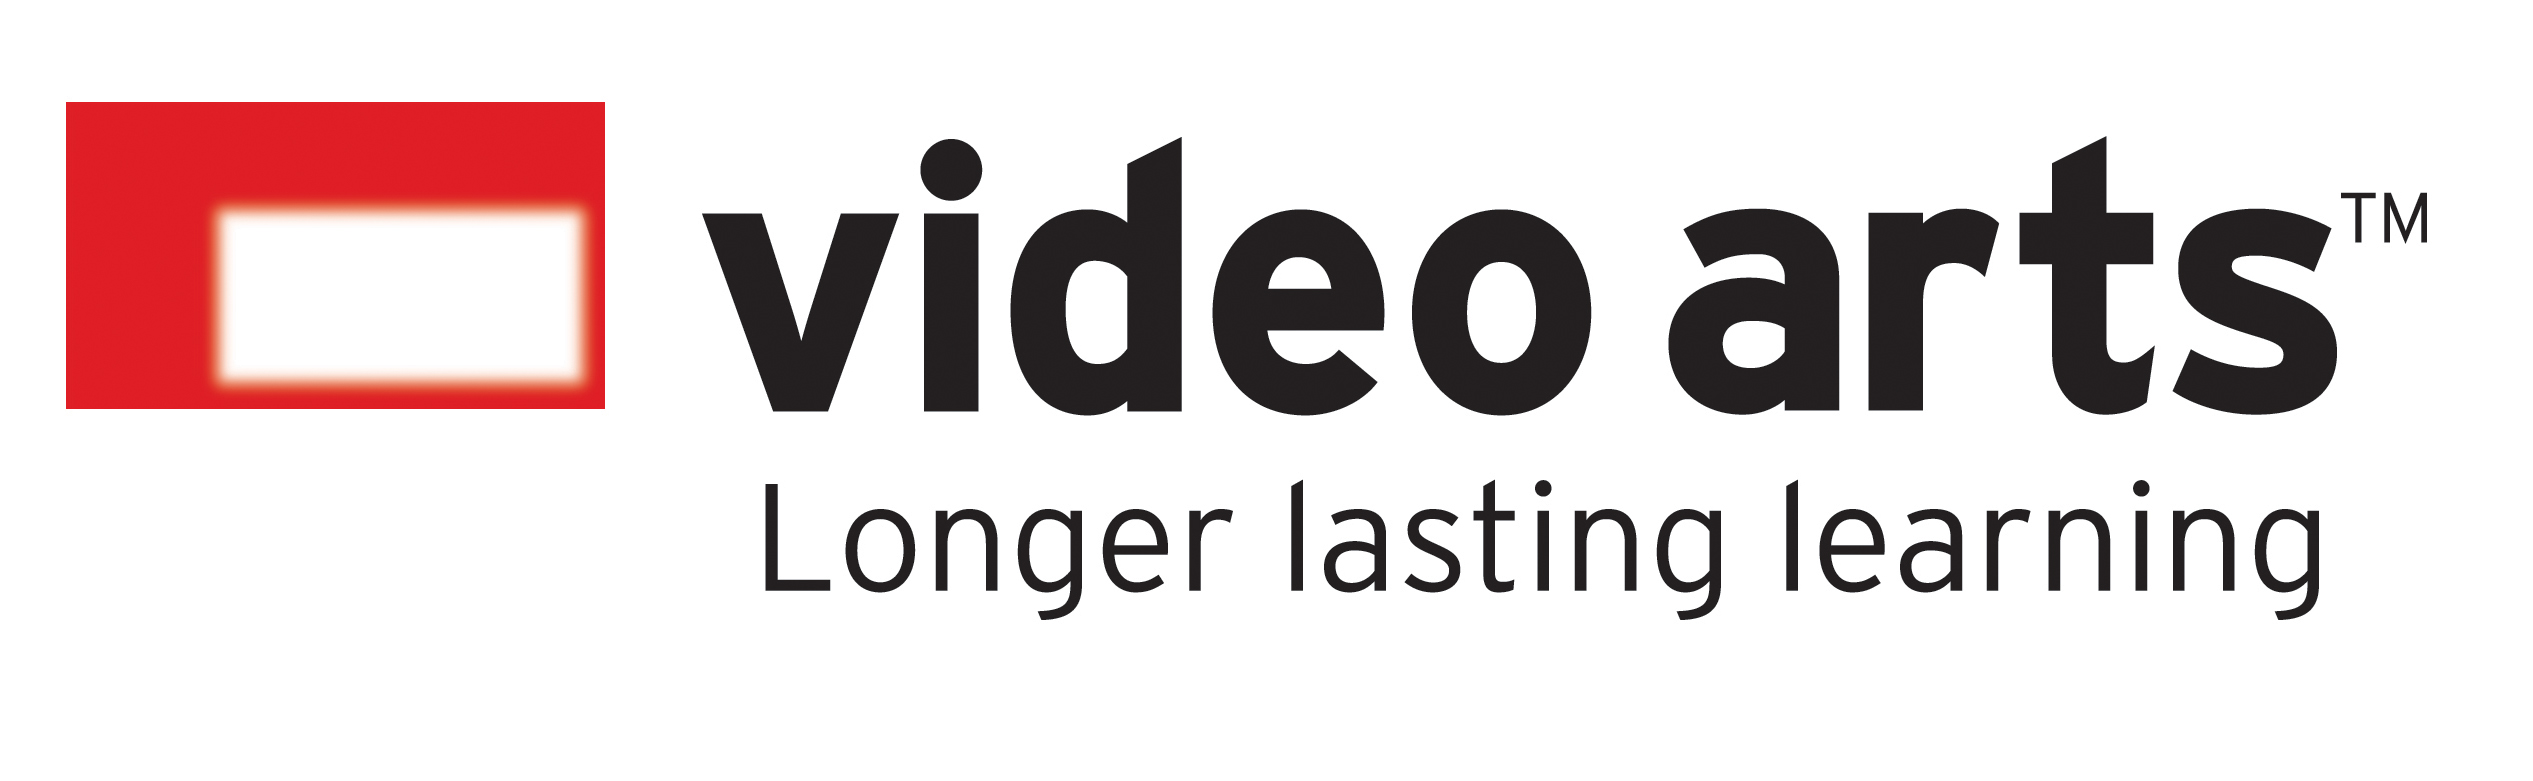 how to put a logo on my video